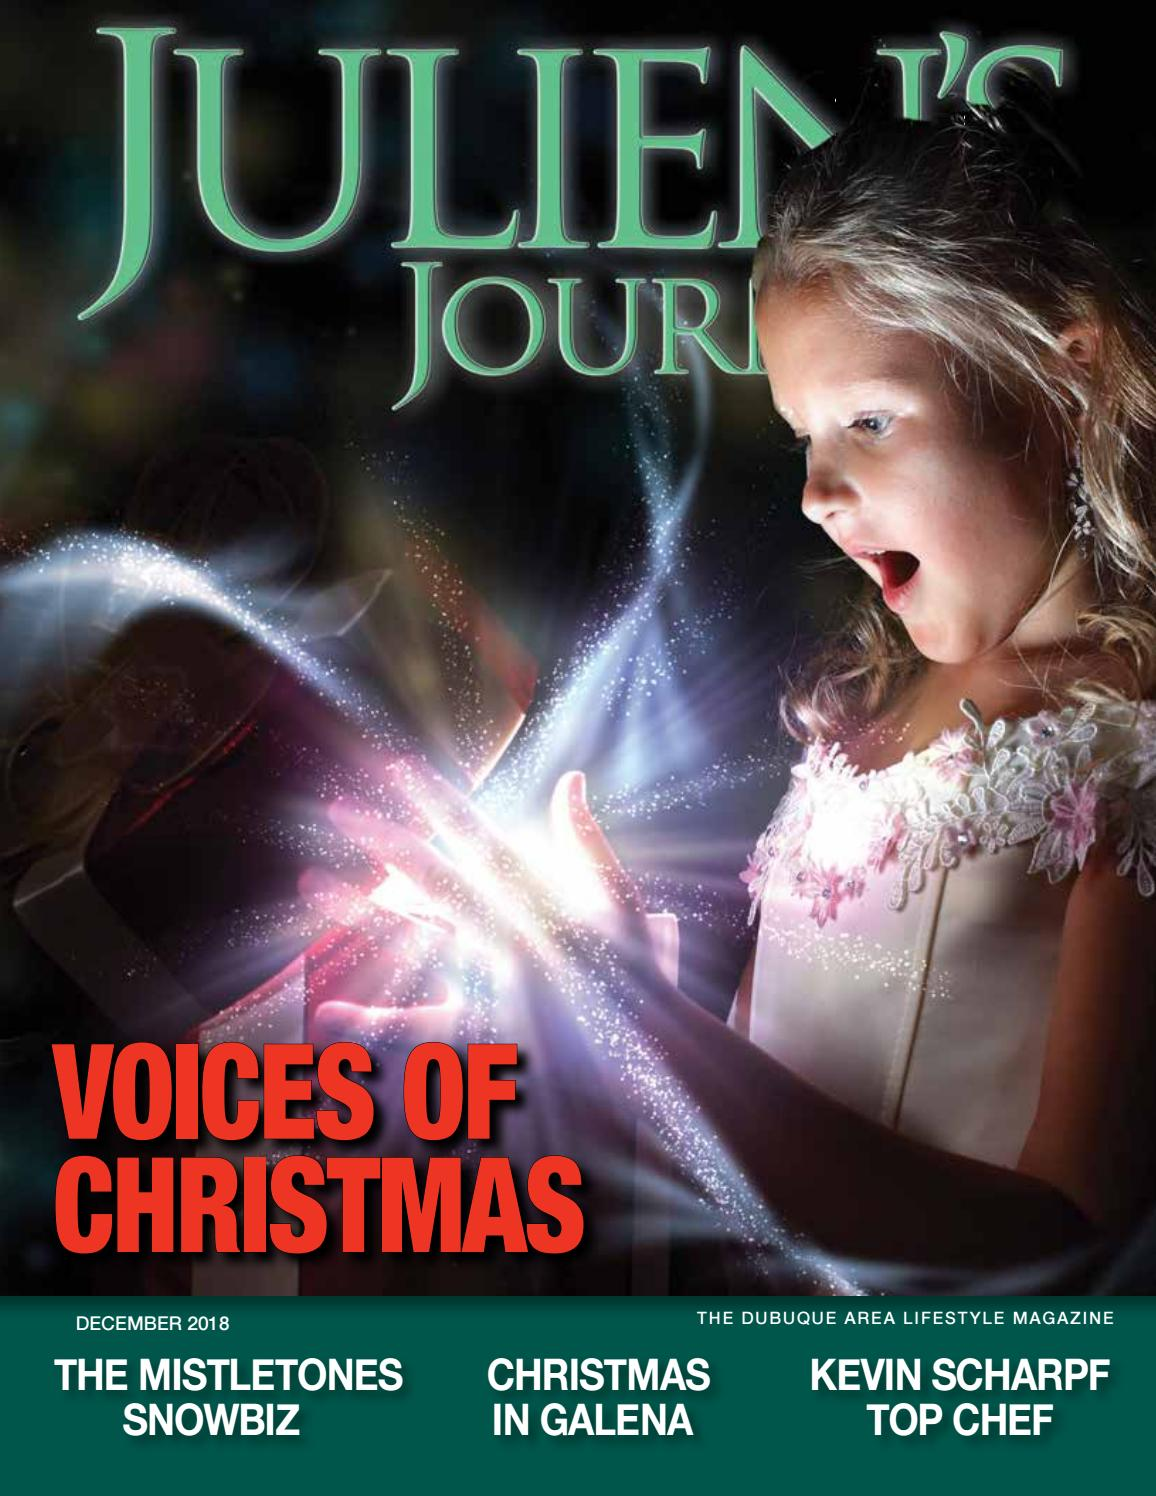 December 2018 Volume 43 Number 12 By Juliens Journal Issuu